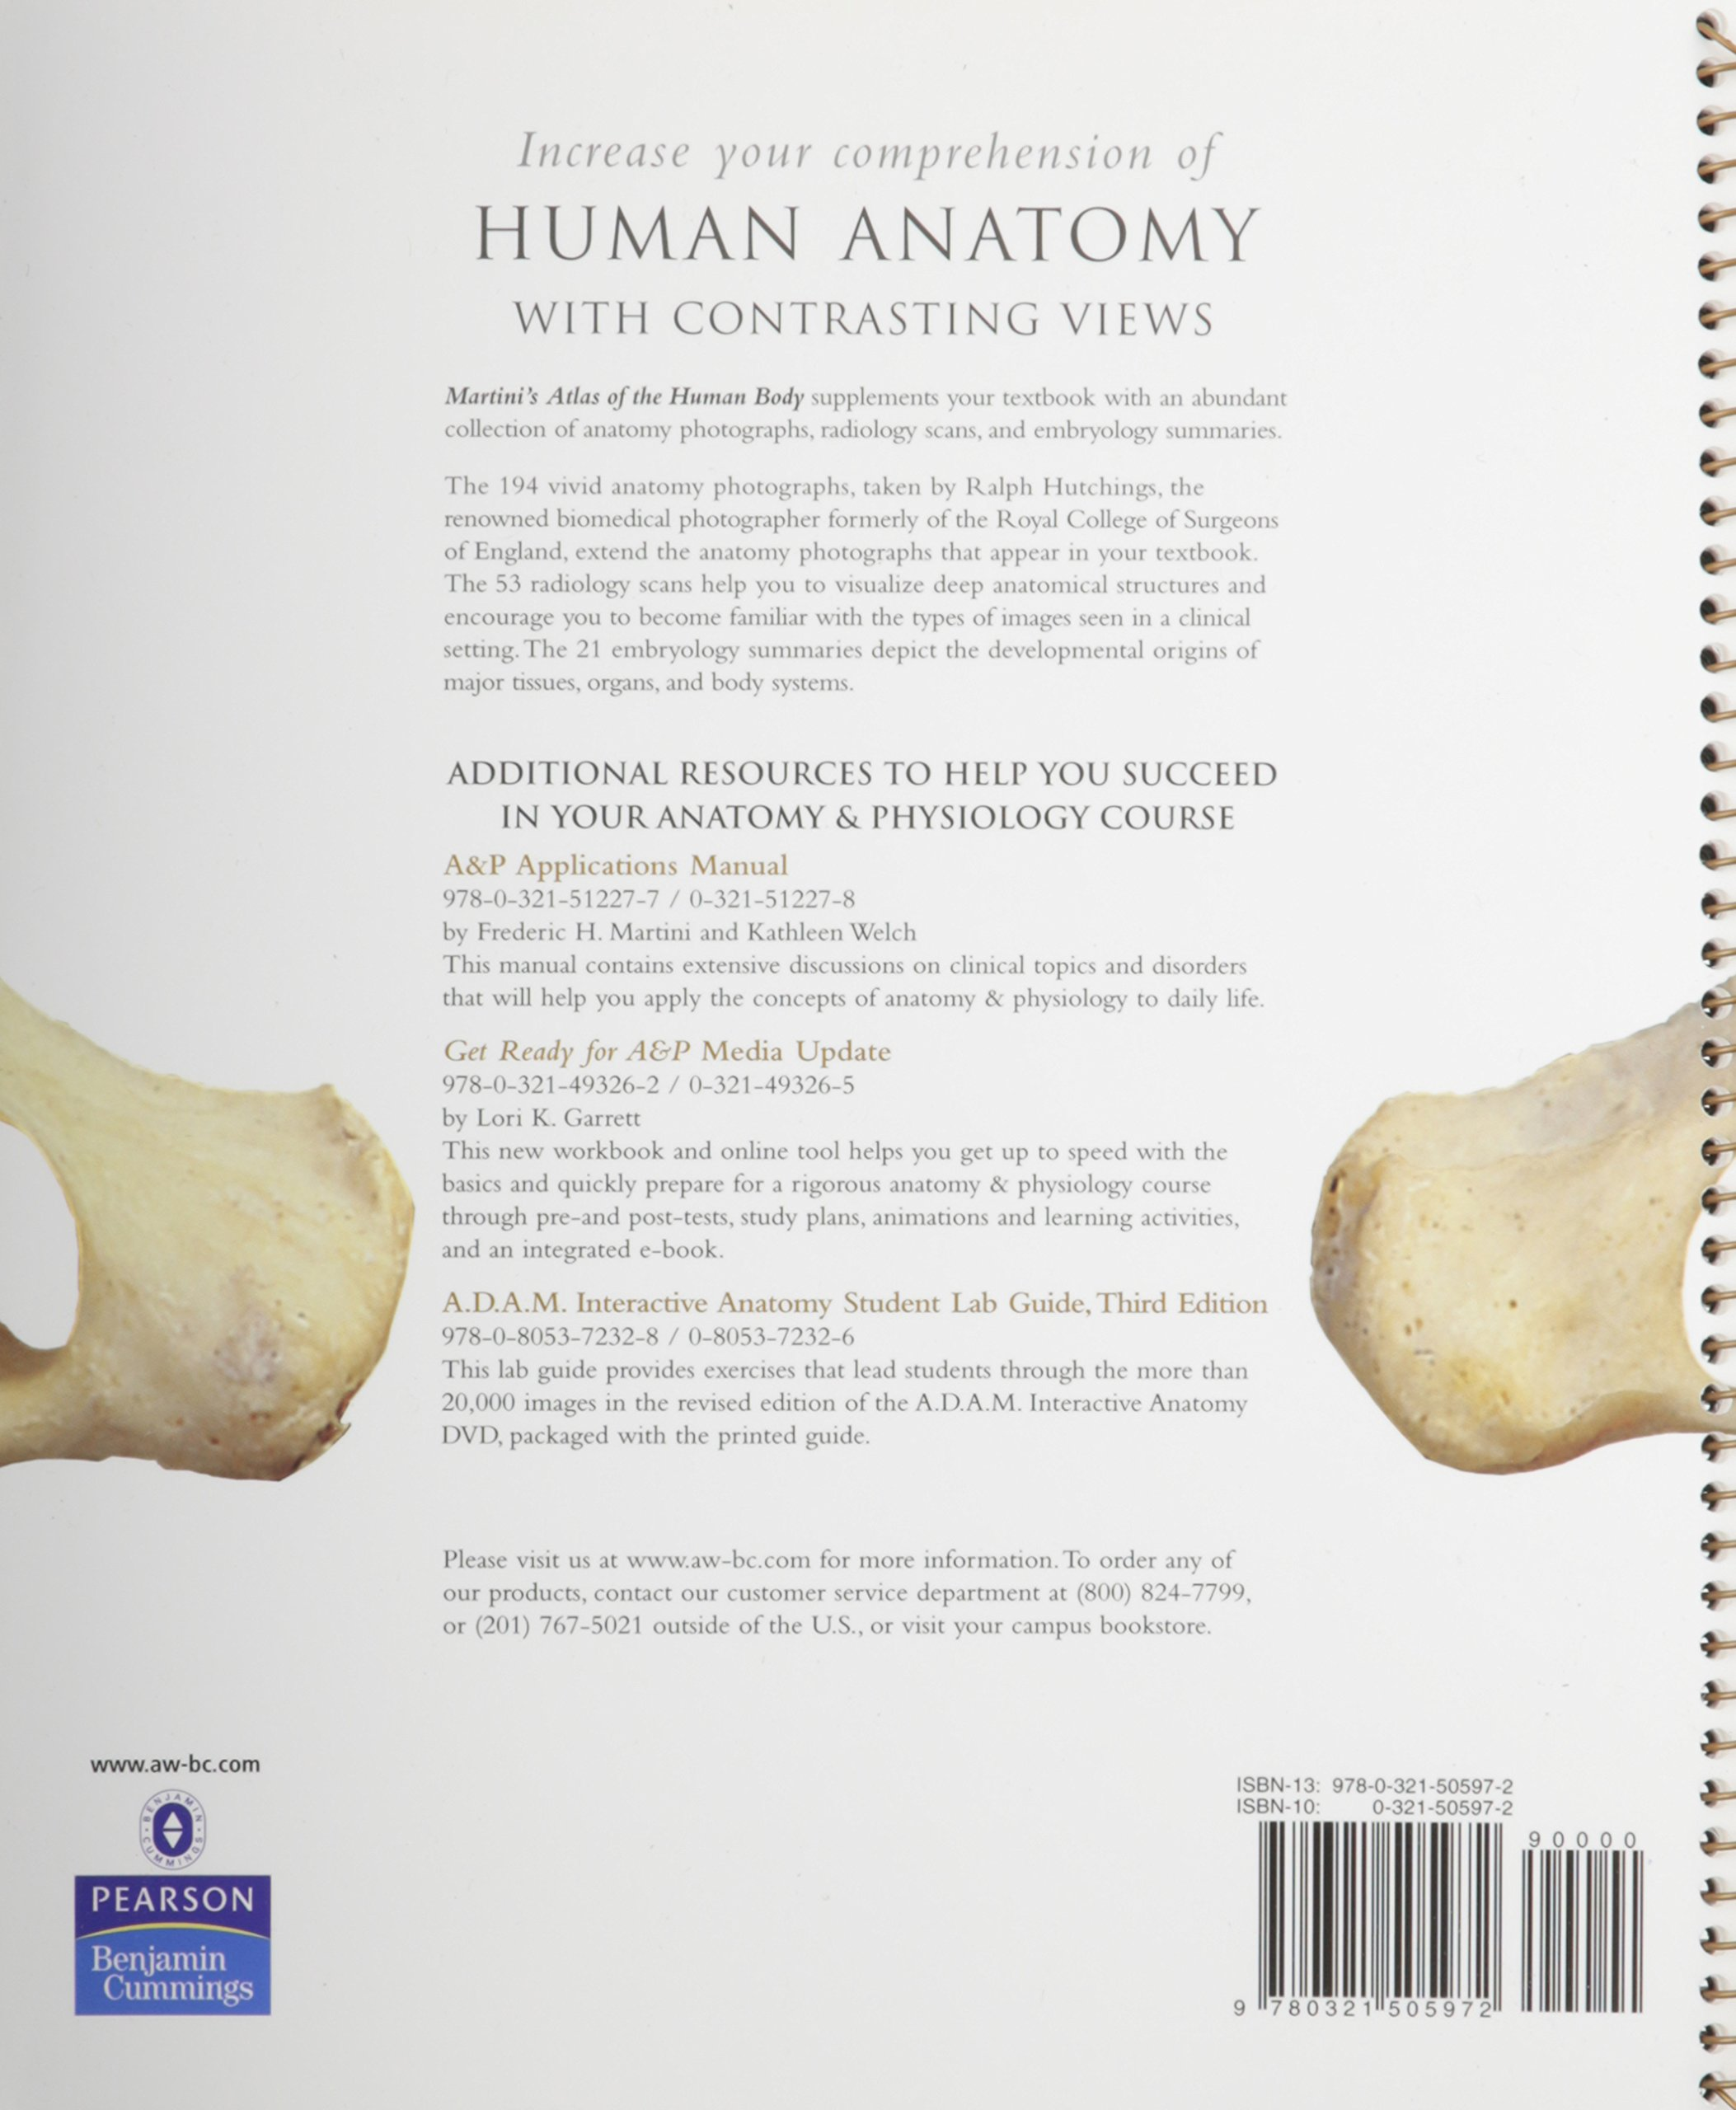 Buy Books a La Carte Plus for Fundamentals of Anatomy + Physiology Value  Package (Includes A&p Applications Manual) Book Online at Low Prices in  India ...